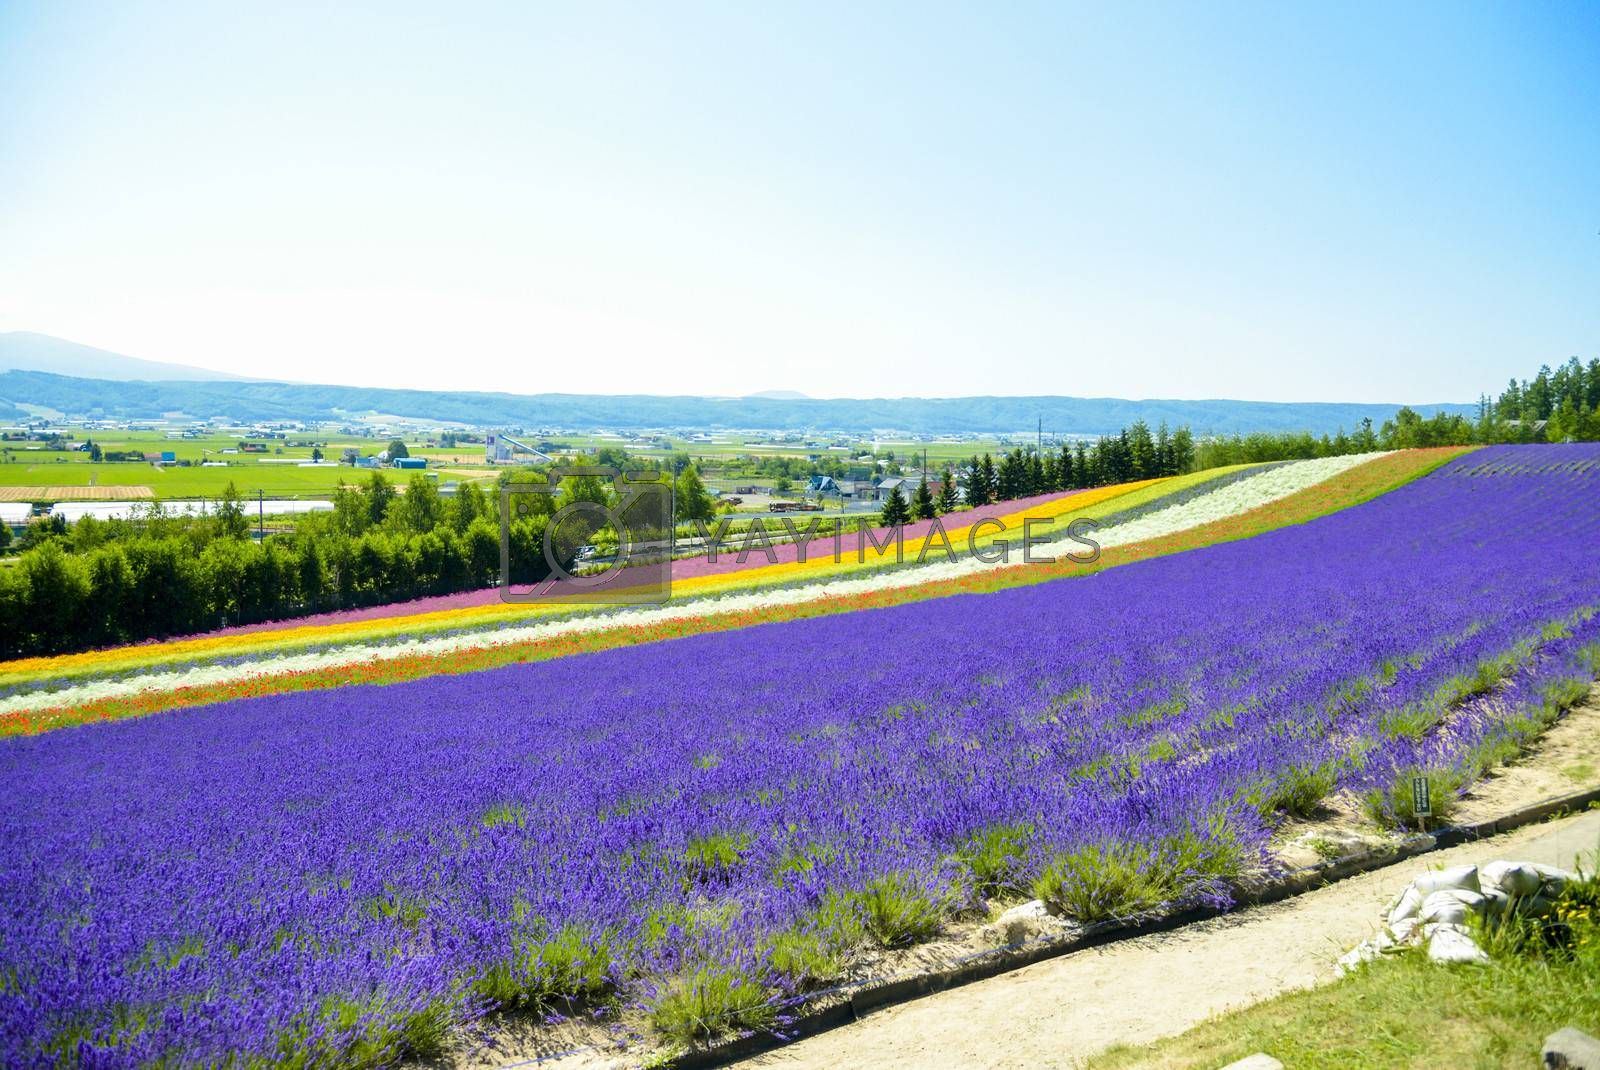 Lavender and colorful flower in the field6